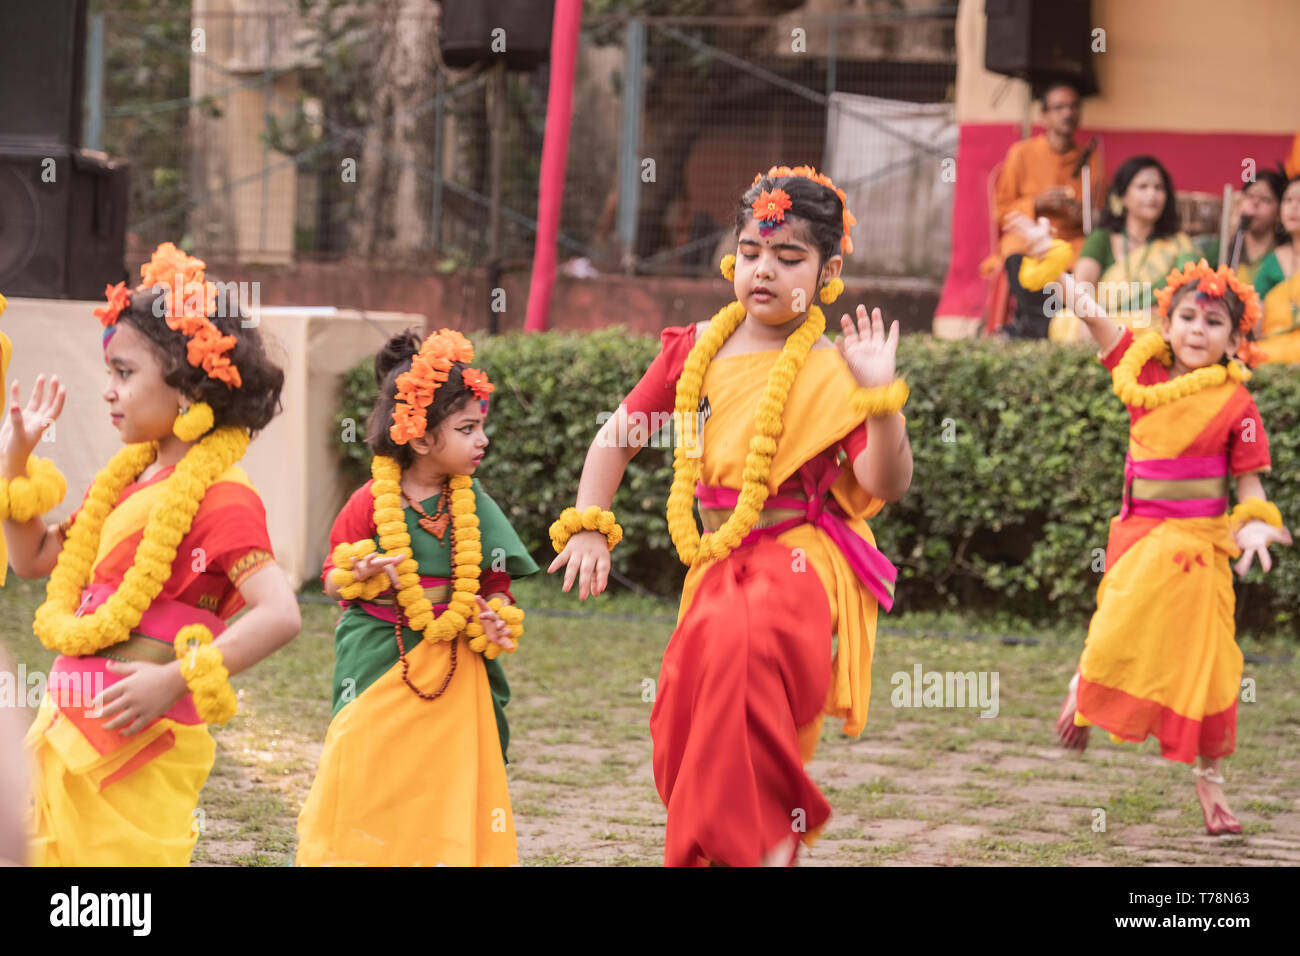 Group,girl,child,dancers,performing, Spring dance,Vasant utsab,,one,little dancing,girl,trying,coping,with,other,girl,dancers,dressedi,in,red,green,ye - Stock Image